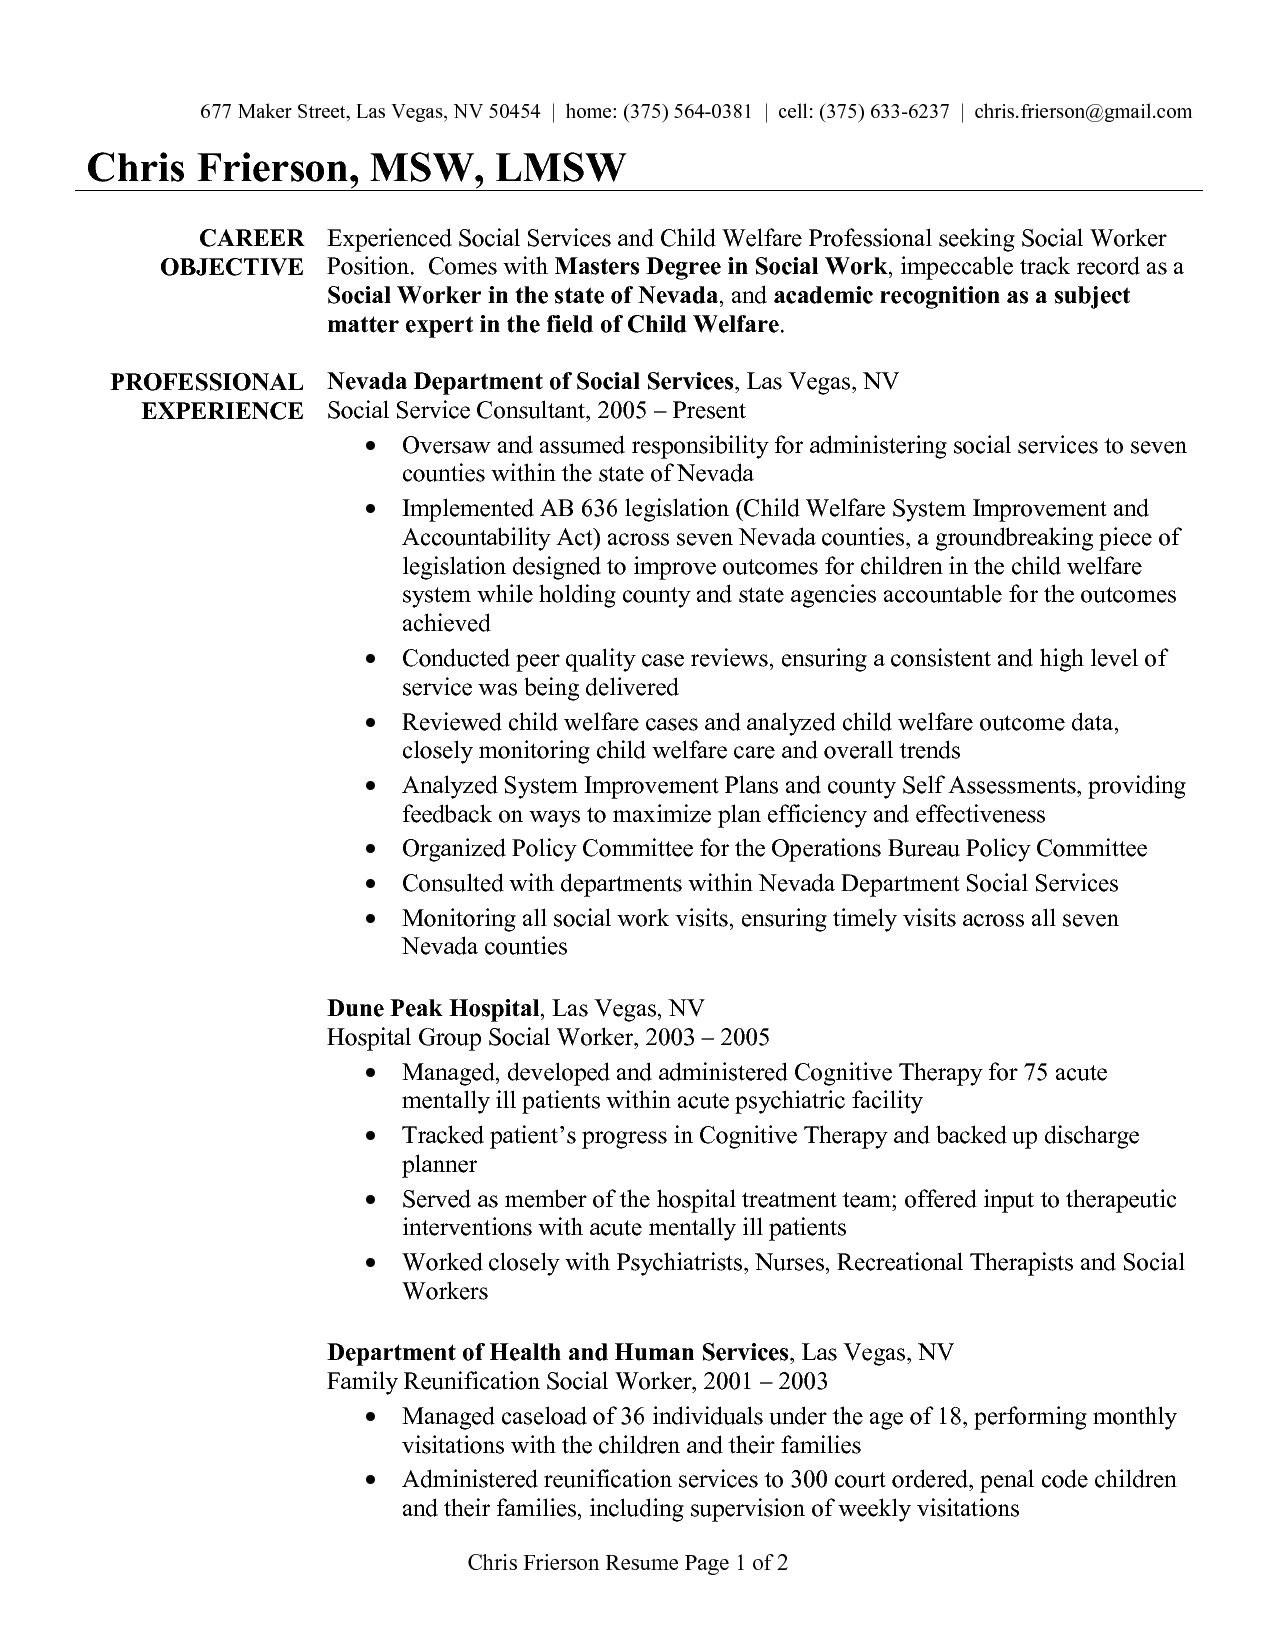 Sample Of Social Worker Resume Social Work Resume Examples  Social Worker Resume Sample .